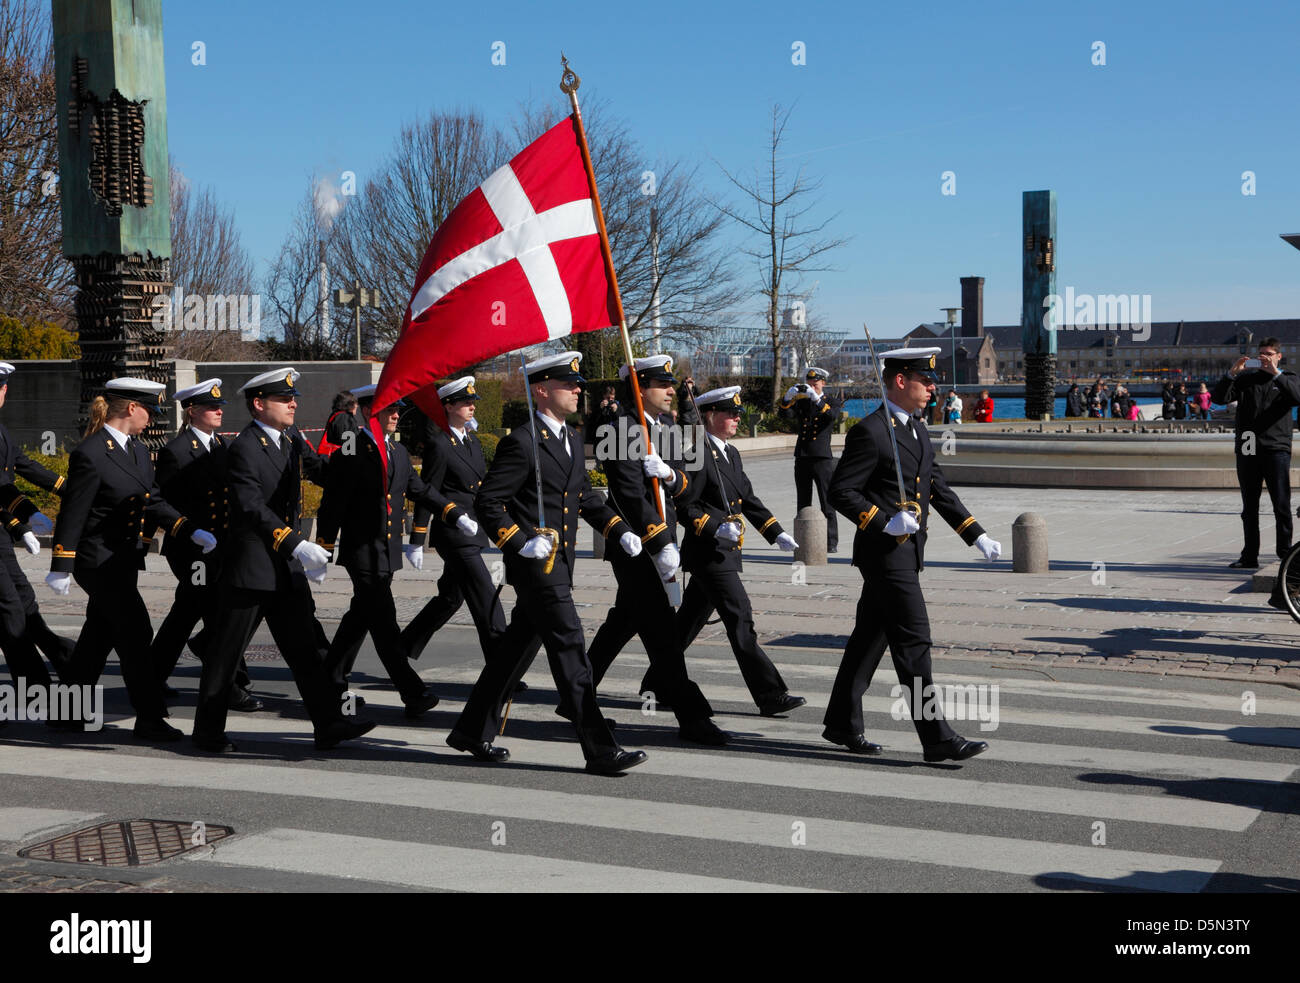 "Copenhagen, Denmark. April 4th 2013. Cadets from the Royal Danish Naval Academy during their ""Flag on Board"" parade - Stock Image"